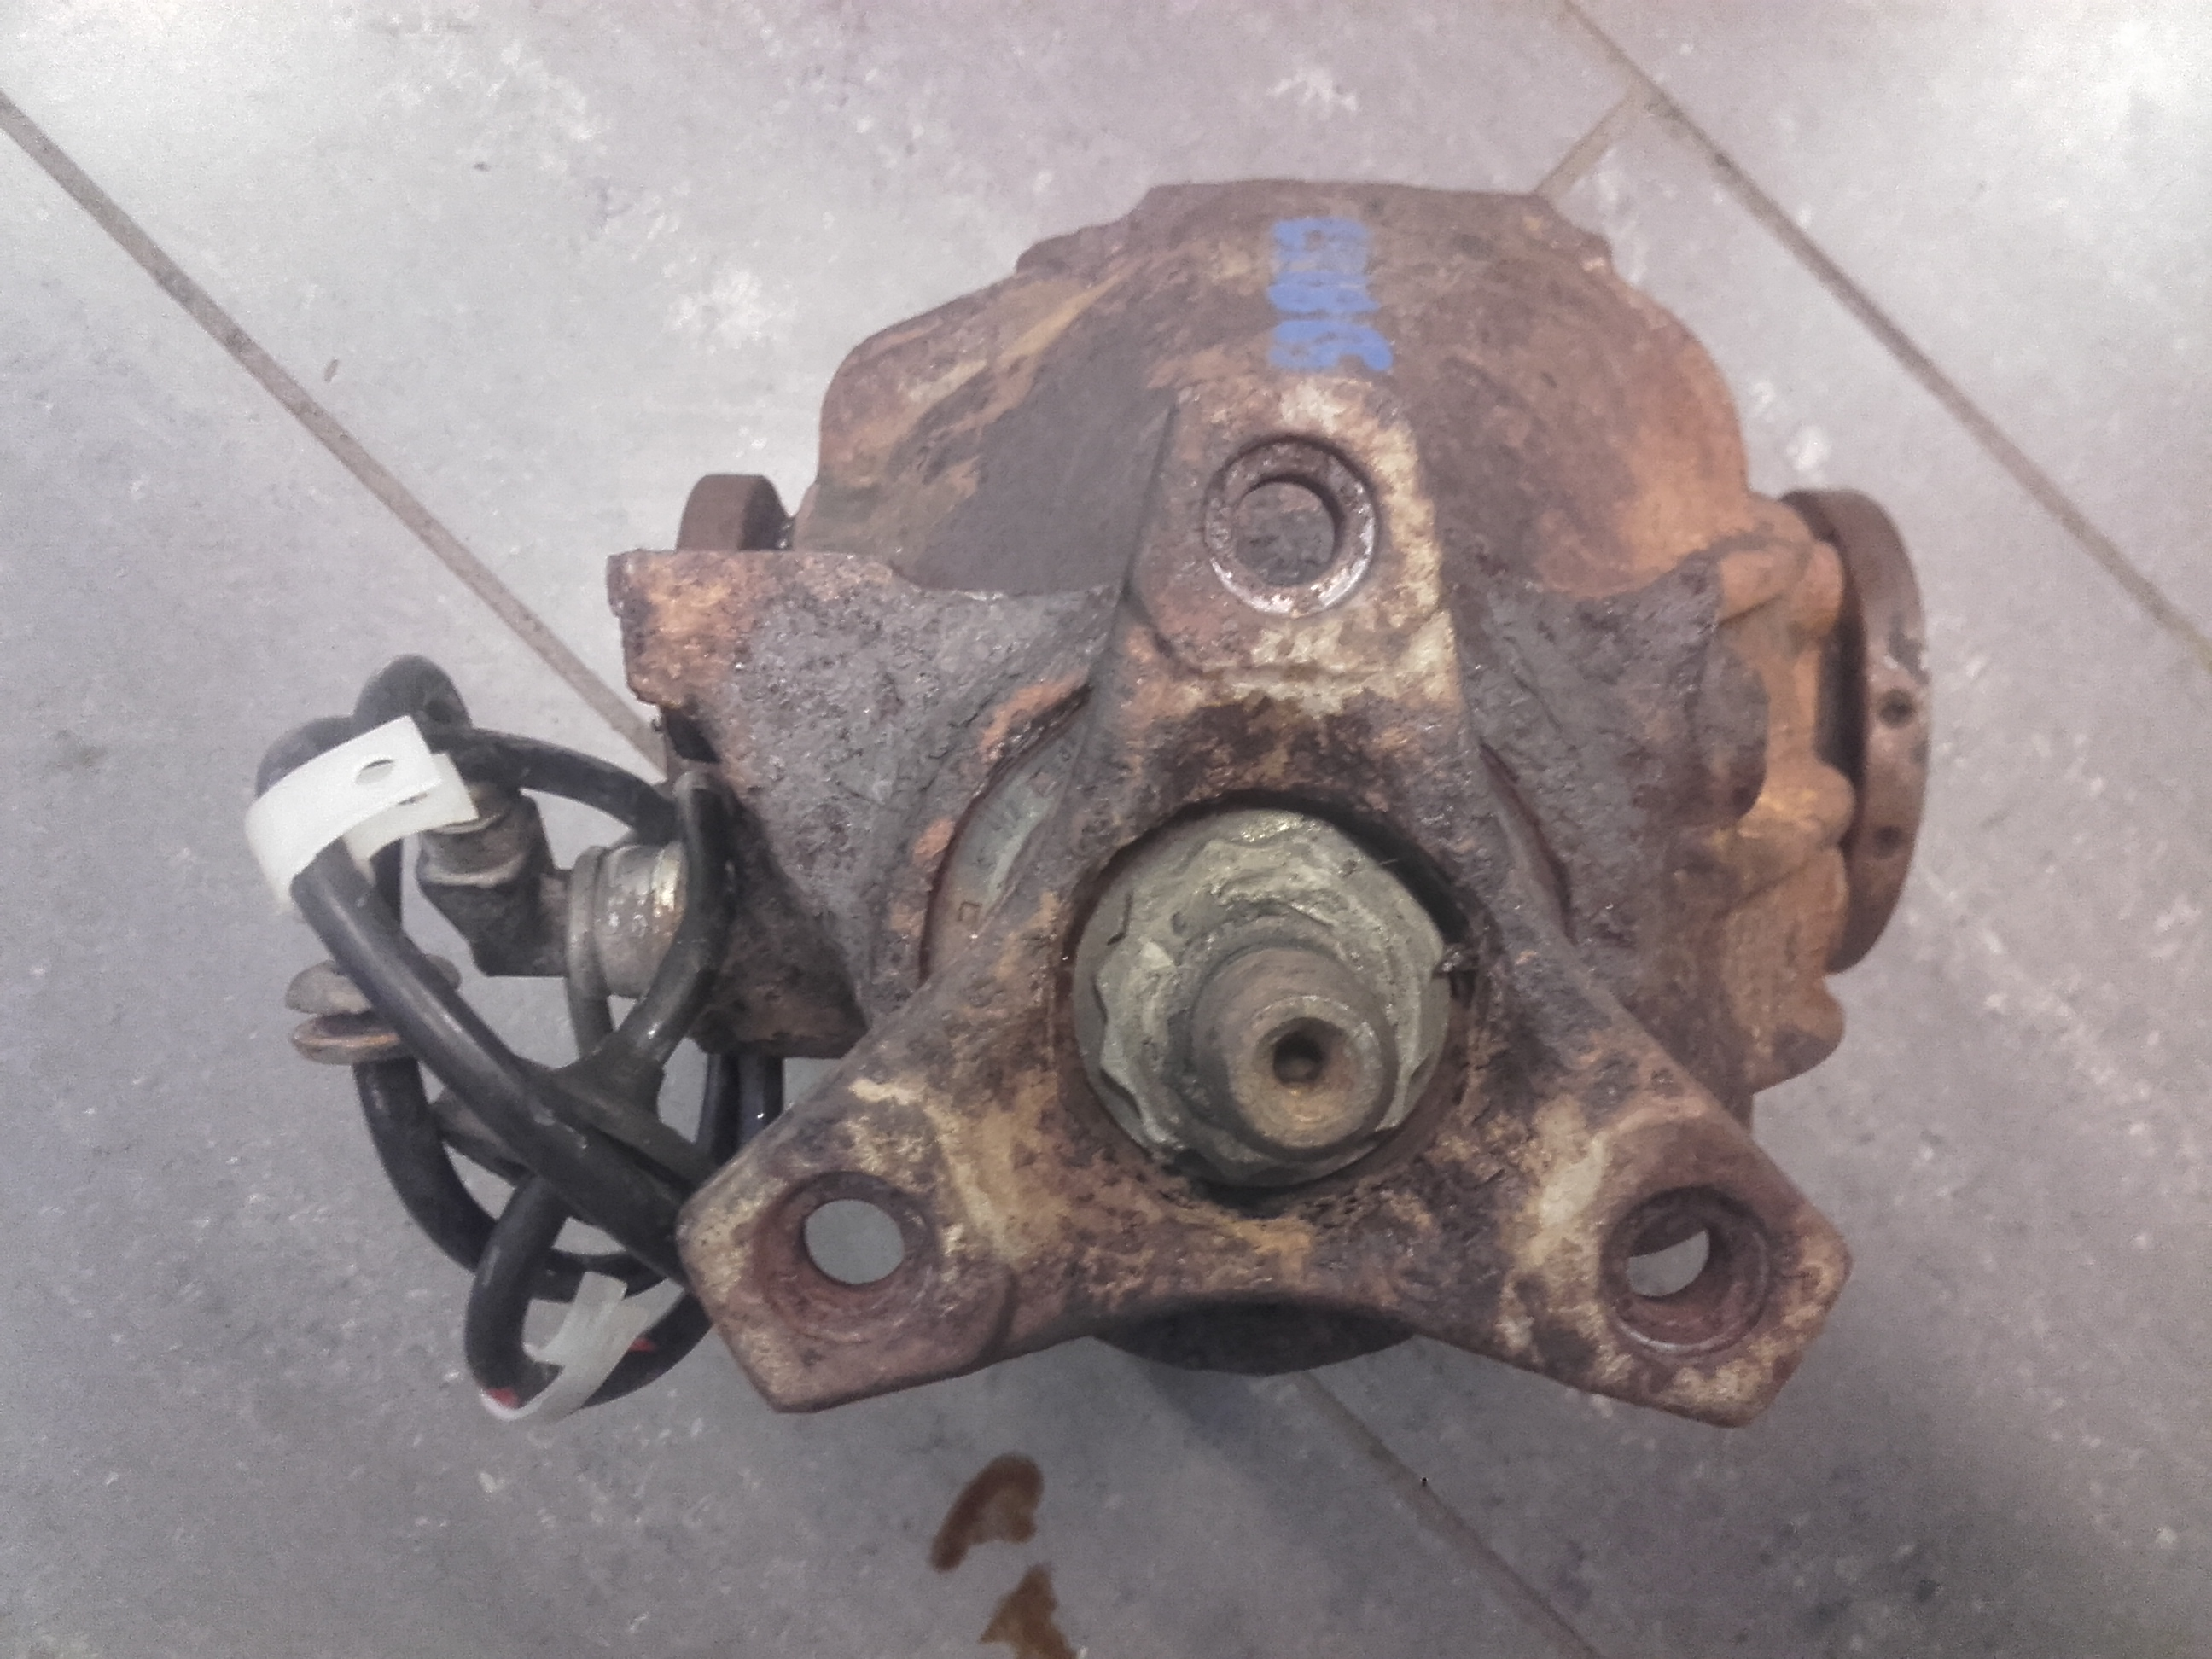 Details about ORIGINAL Rear axle assembly lump rear MERCEDES-BENZ E-CLASS  (W124) 1993